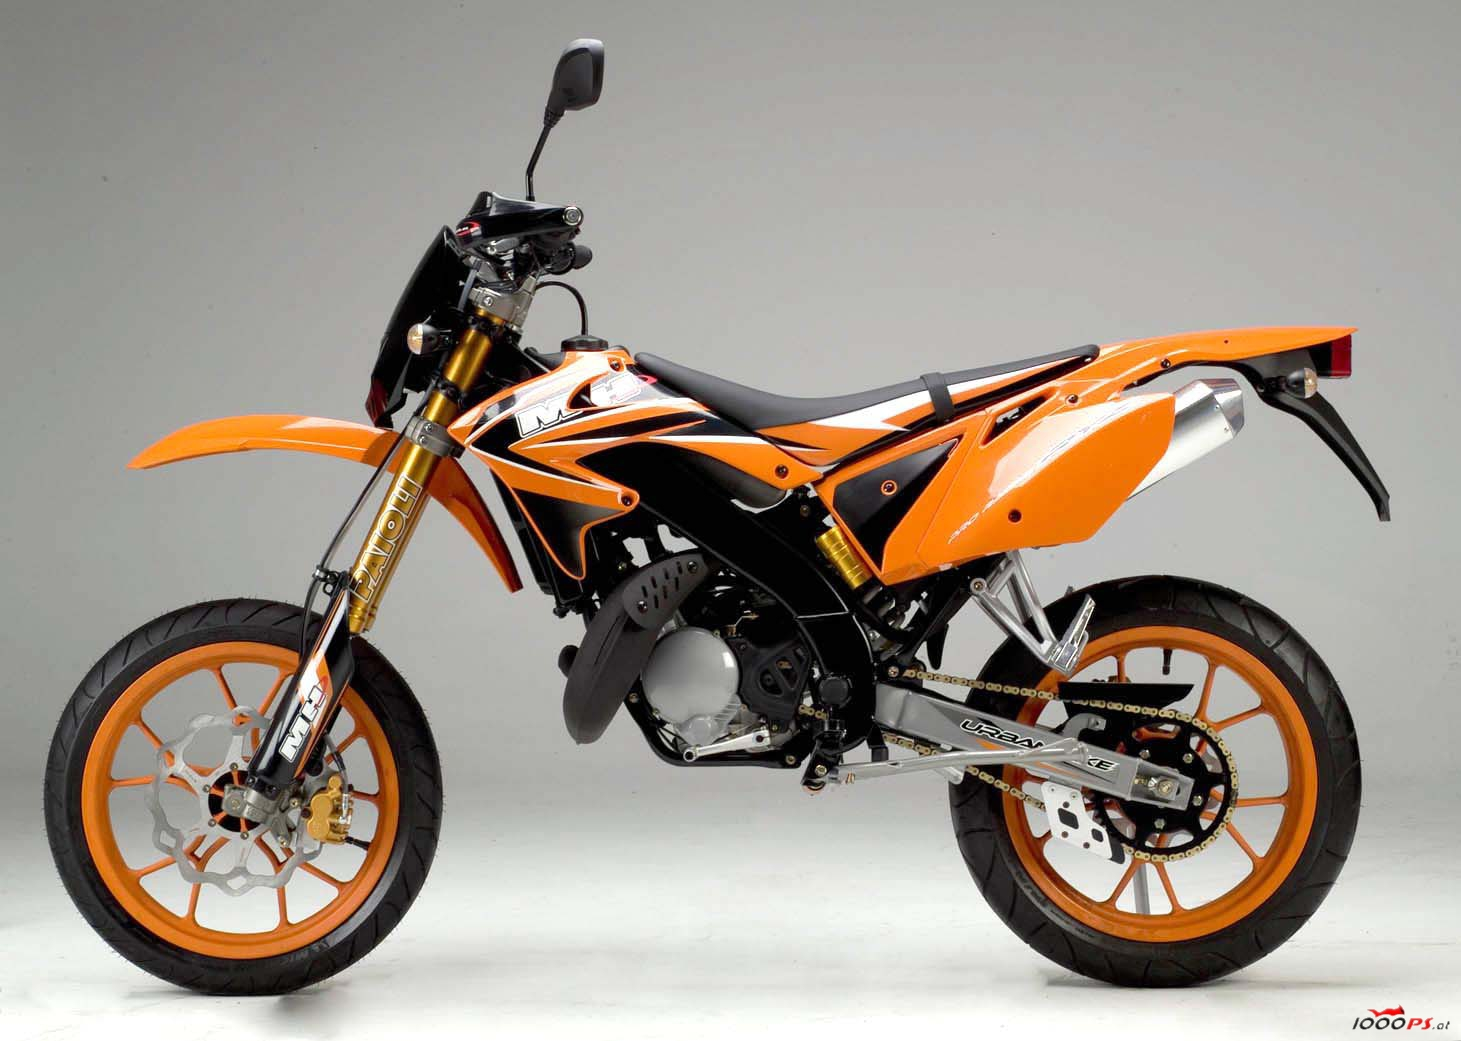 Motorhispania Ryz 50 Super Motard 2008 images #113629